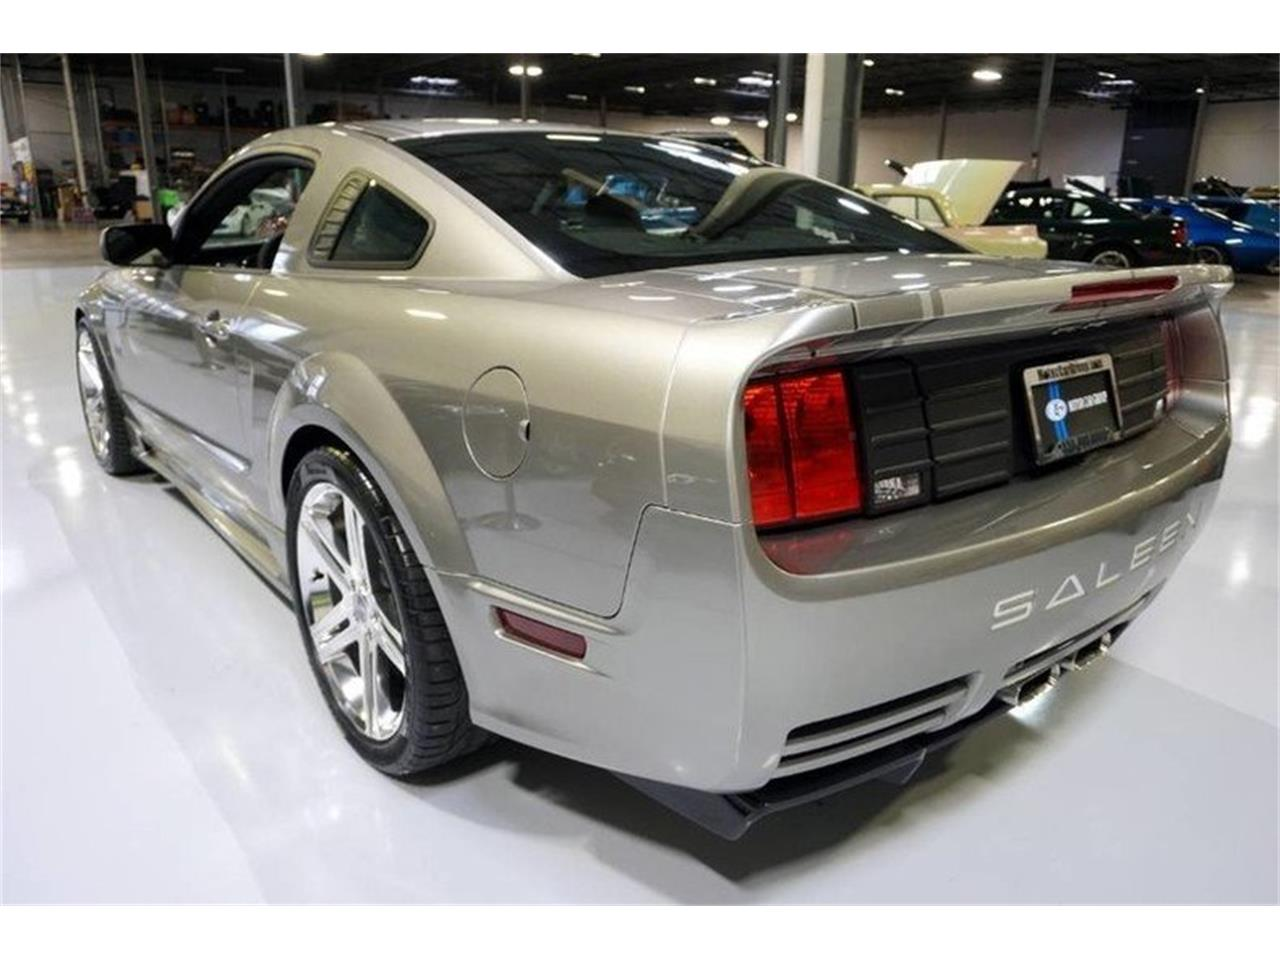 2008 Ford Mustang Saleen For Sale Classiccars Com Cc 1044986